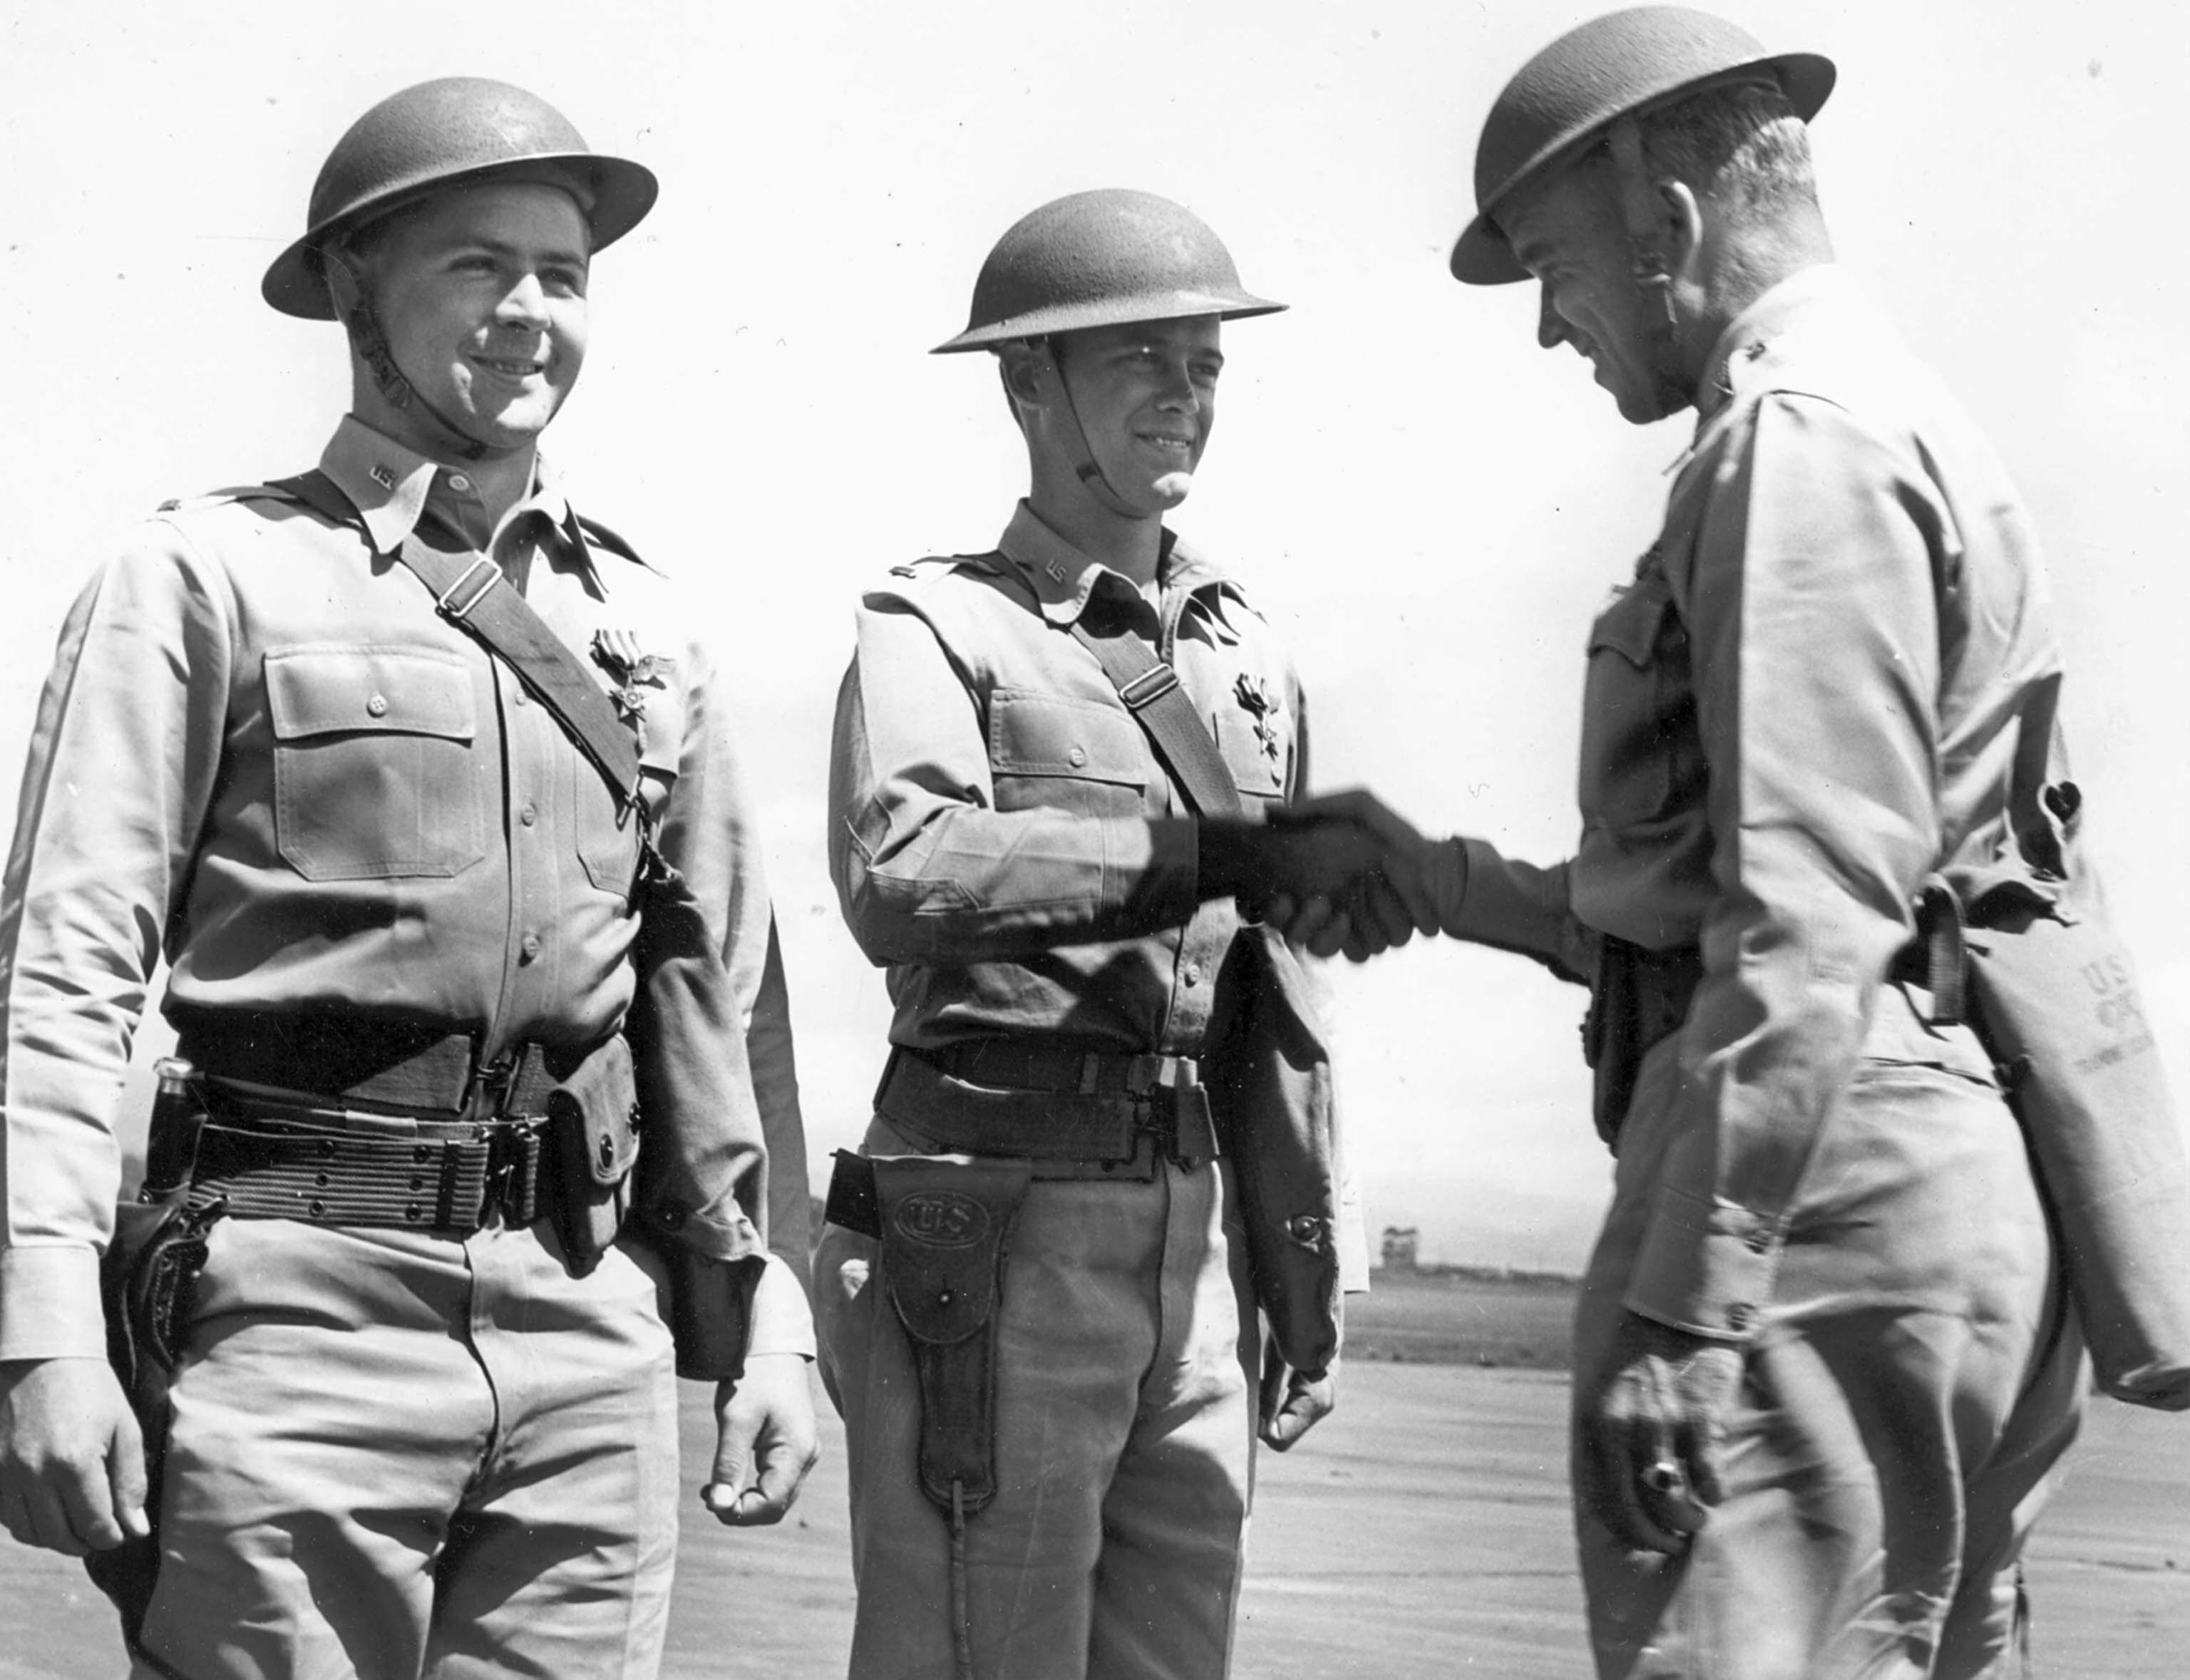 Awarding American officers